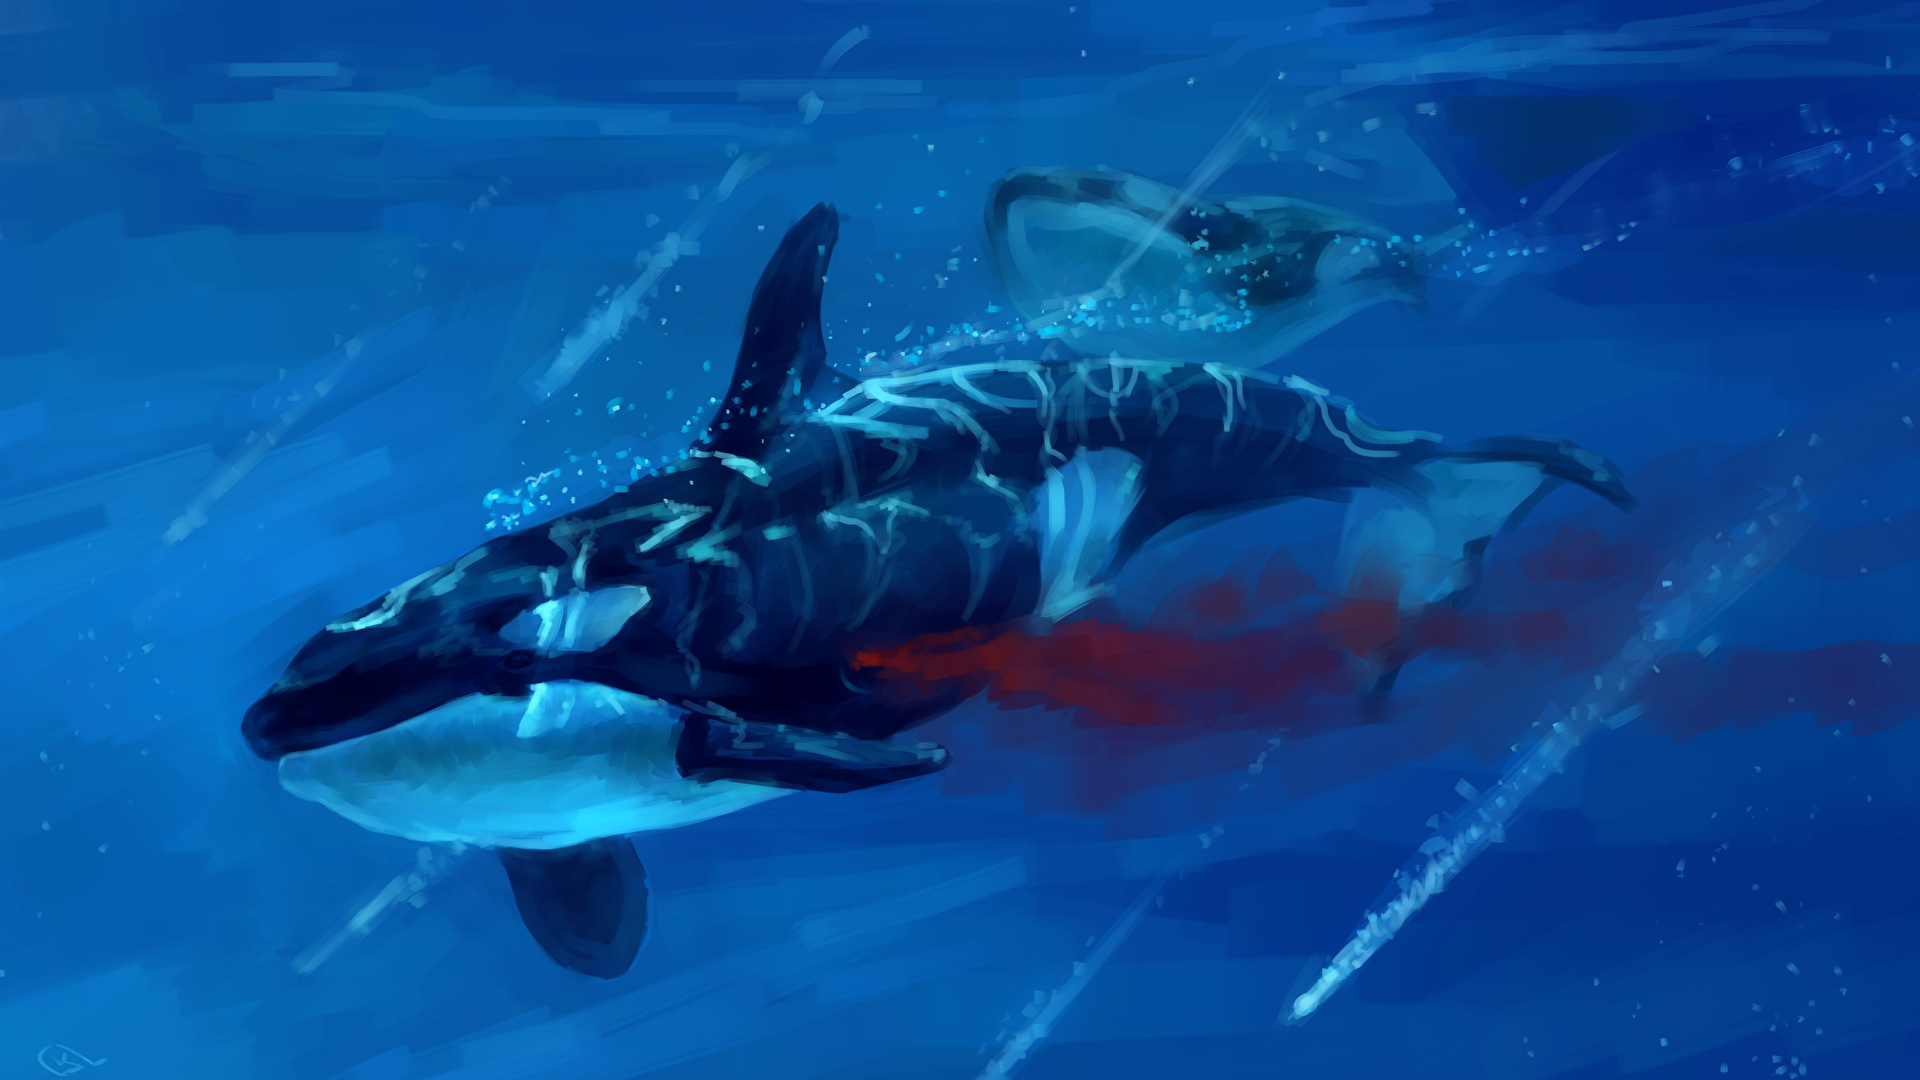 Wallpaper Orca Underwater World Blood Animal Painting Art